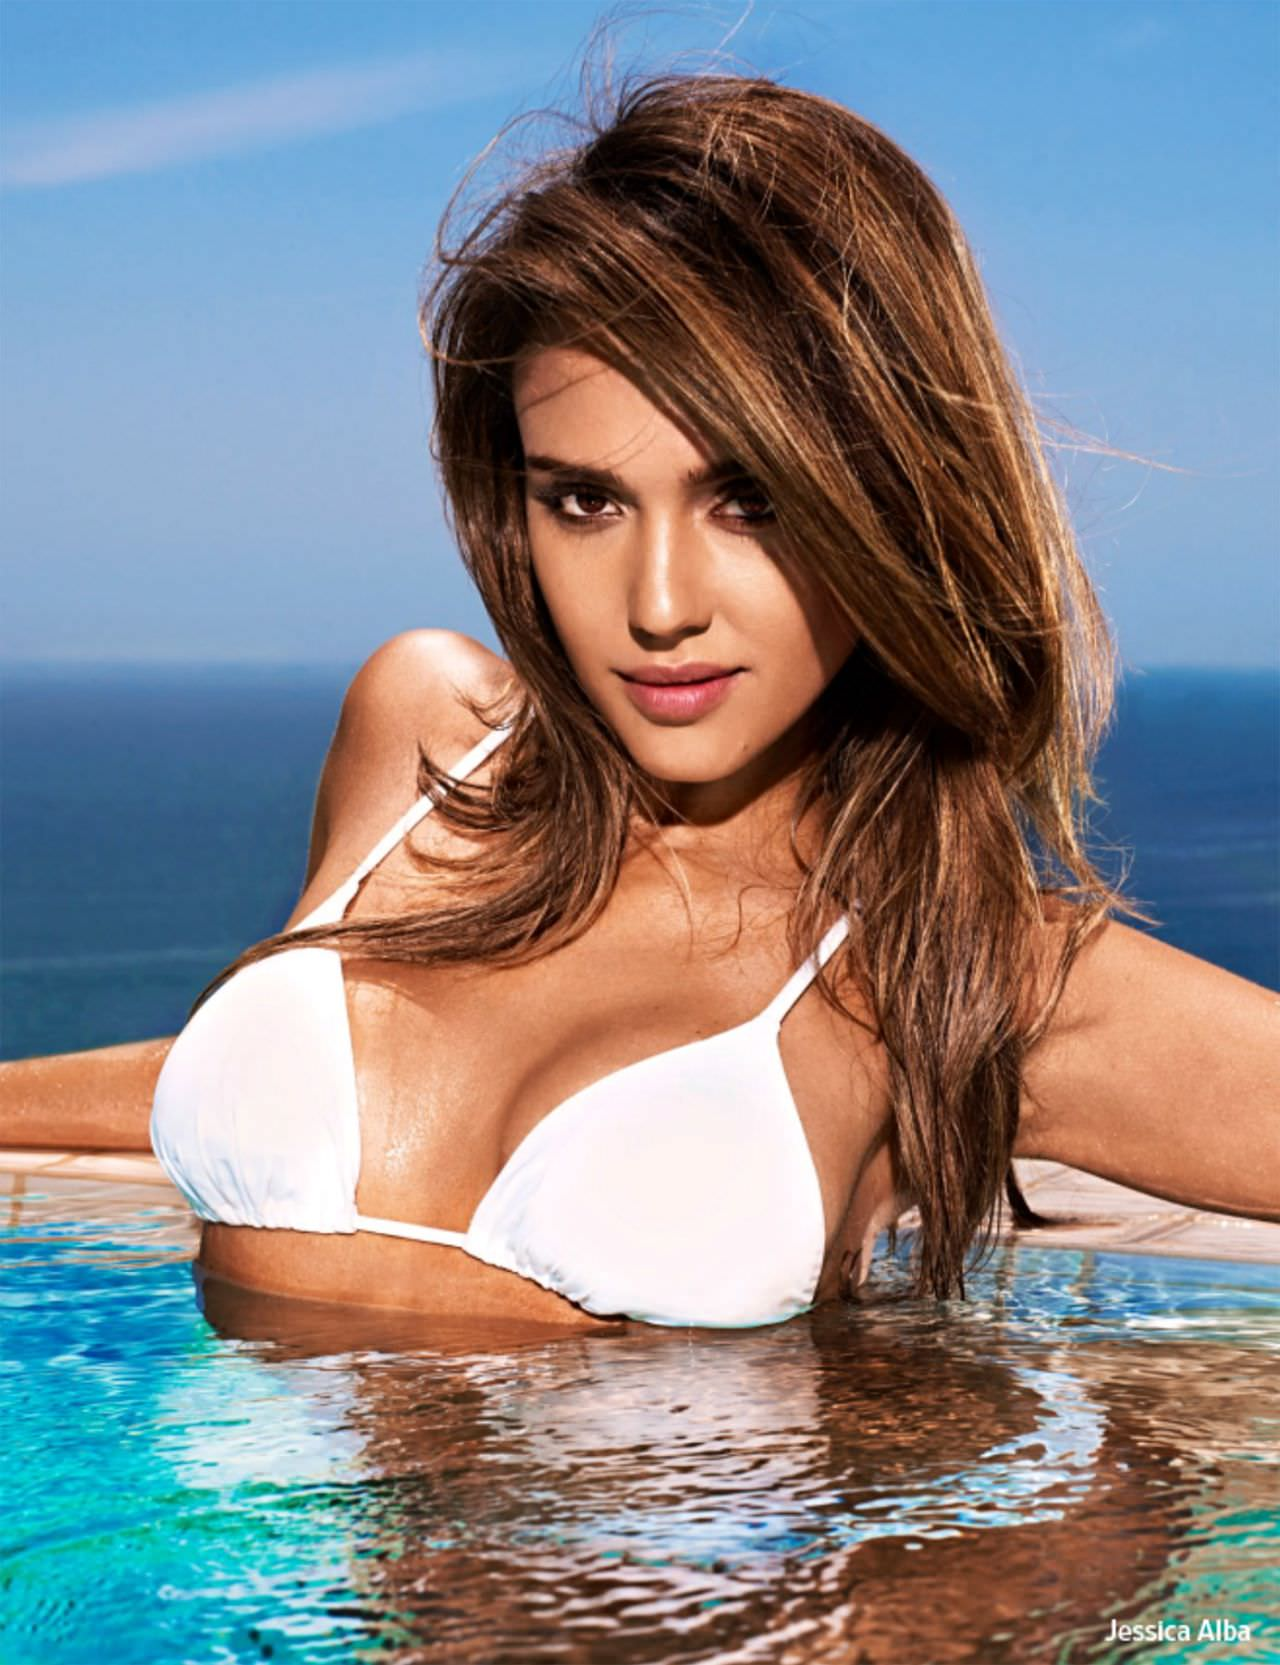 jessica-alba-in-a-bikini-entertainment-weekly-magazine-may-june-2014-issue_9